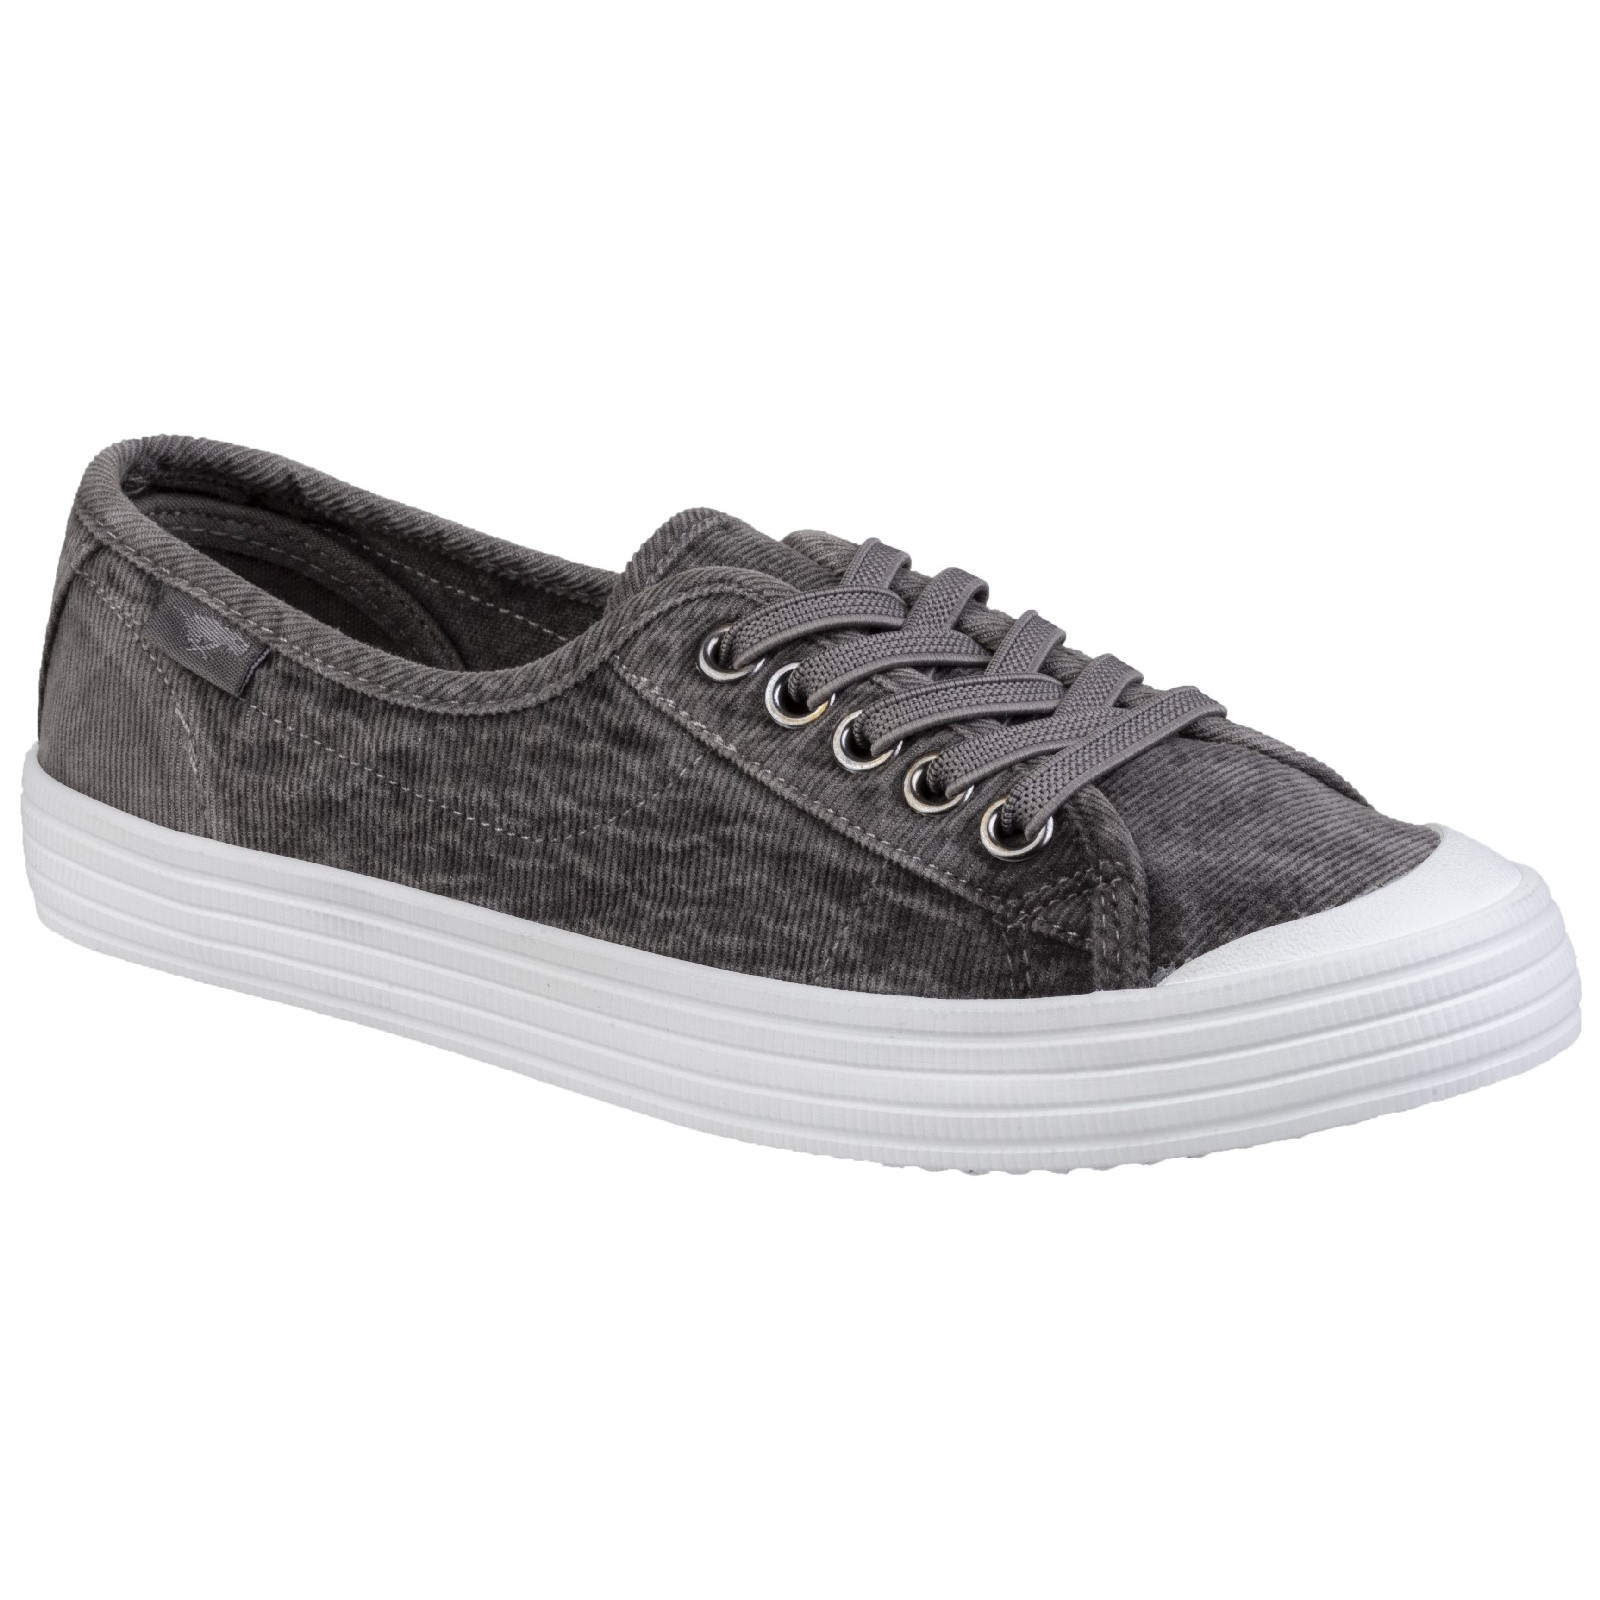 Rocket Dog femmes Chow Rye a Costine chaussures con Lacci